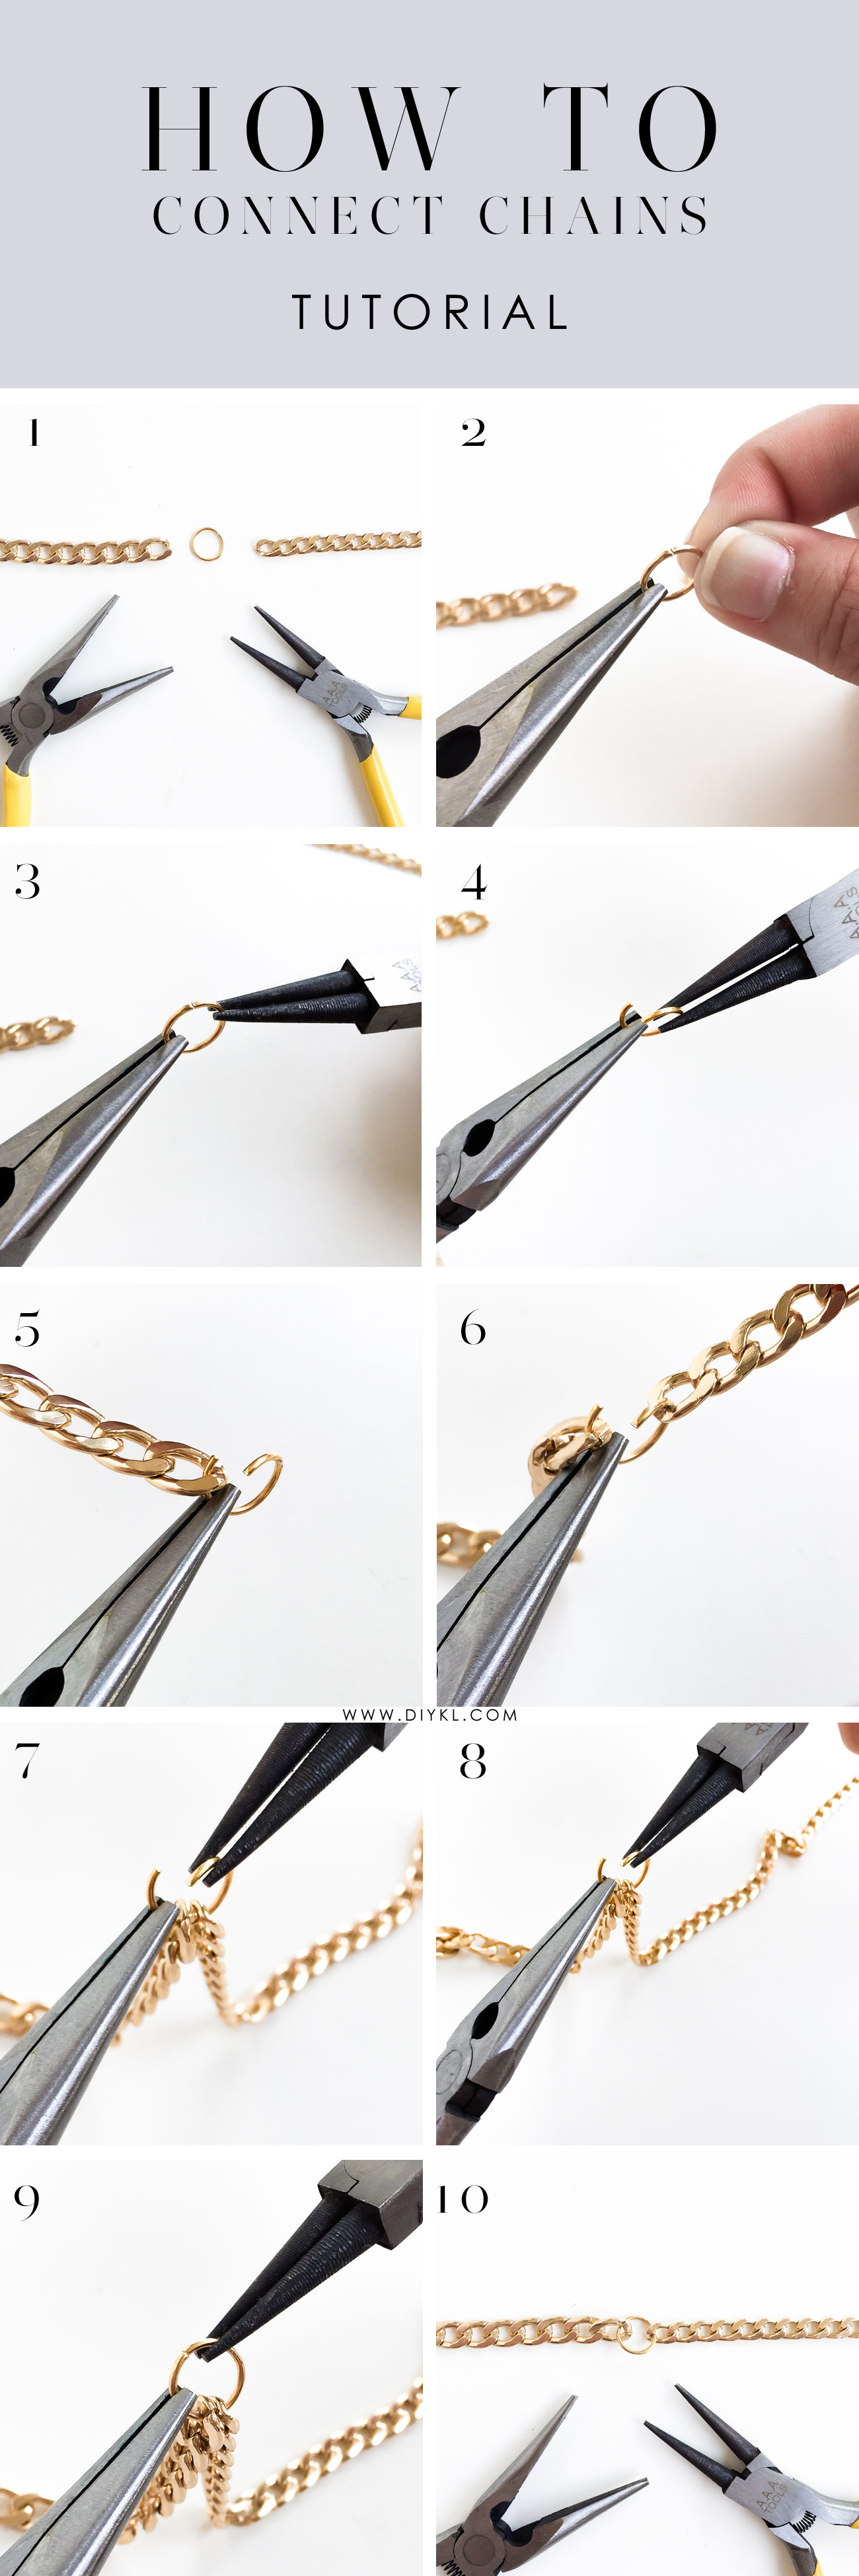 diy how to connect chains